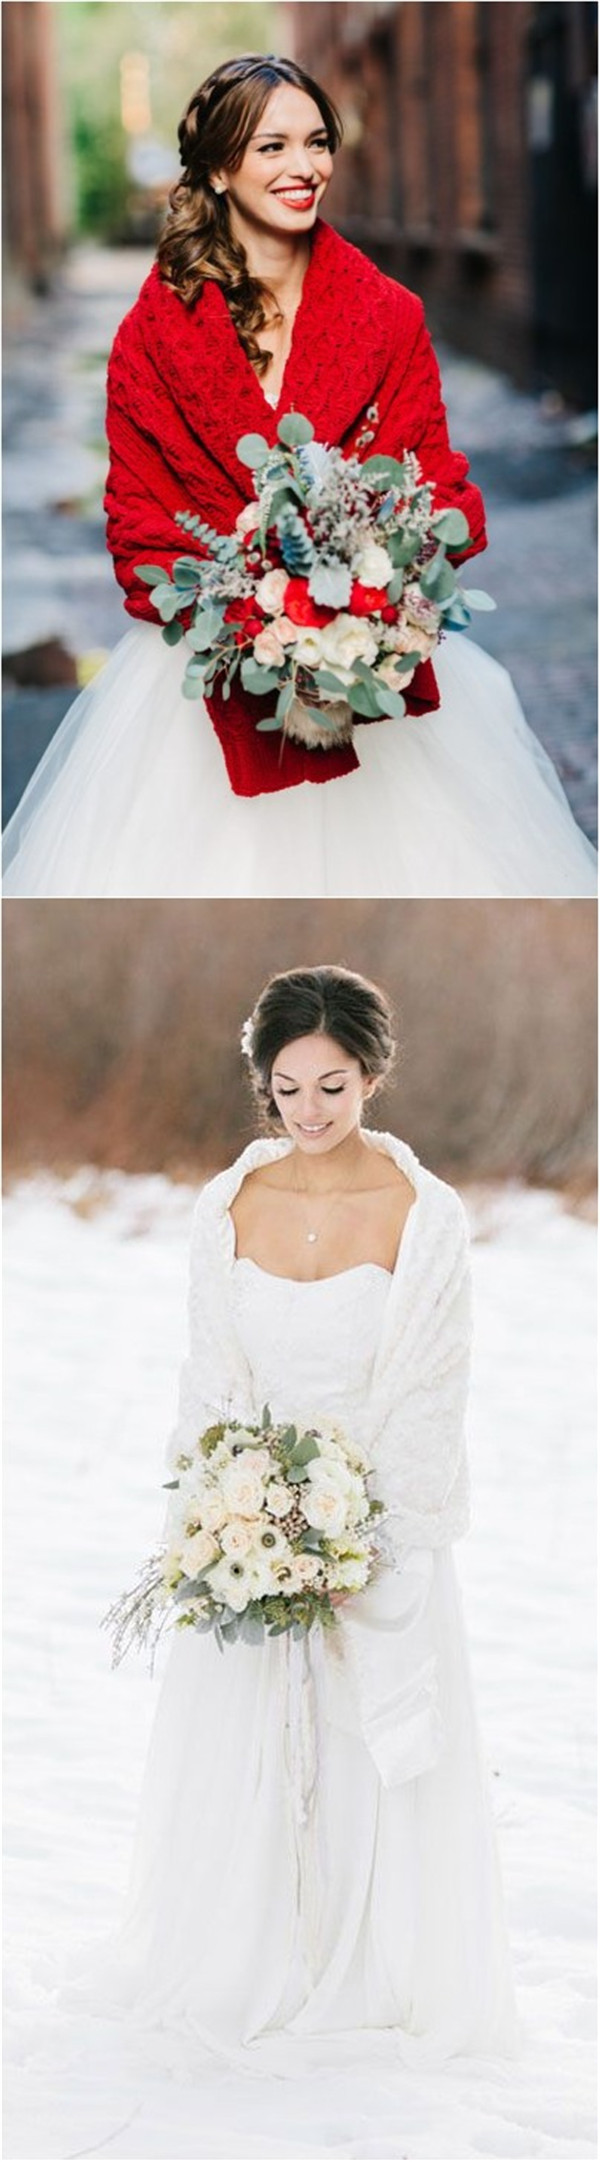 White and Red Christmas Wedding Dress